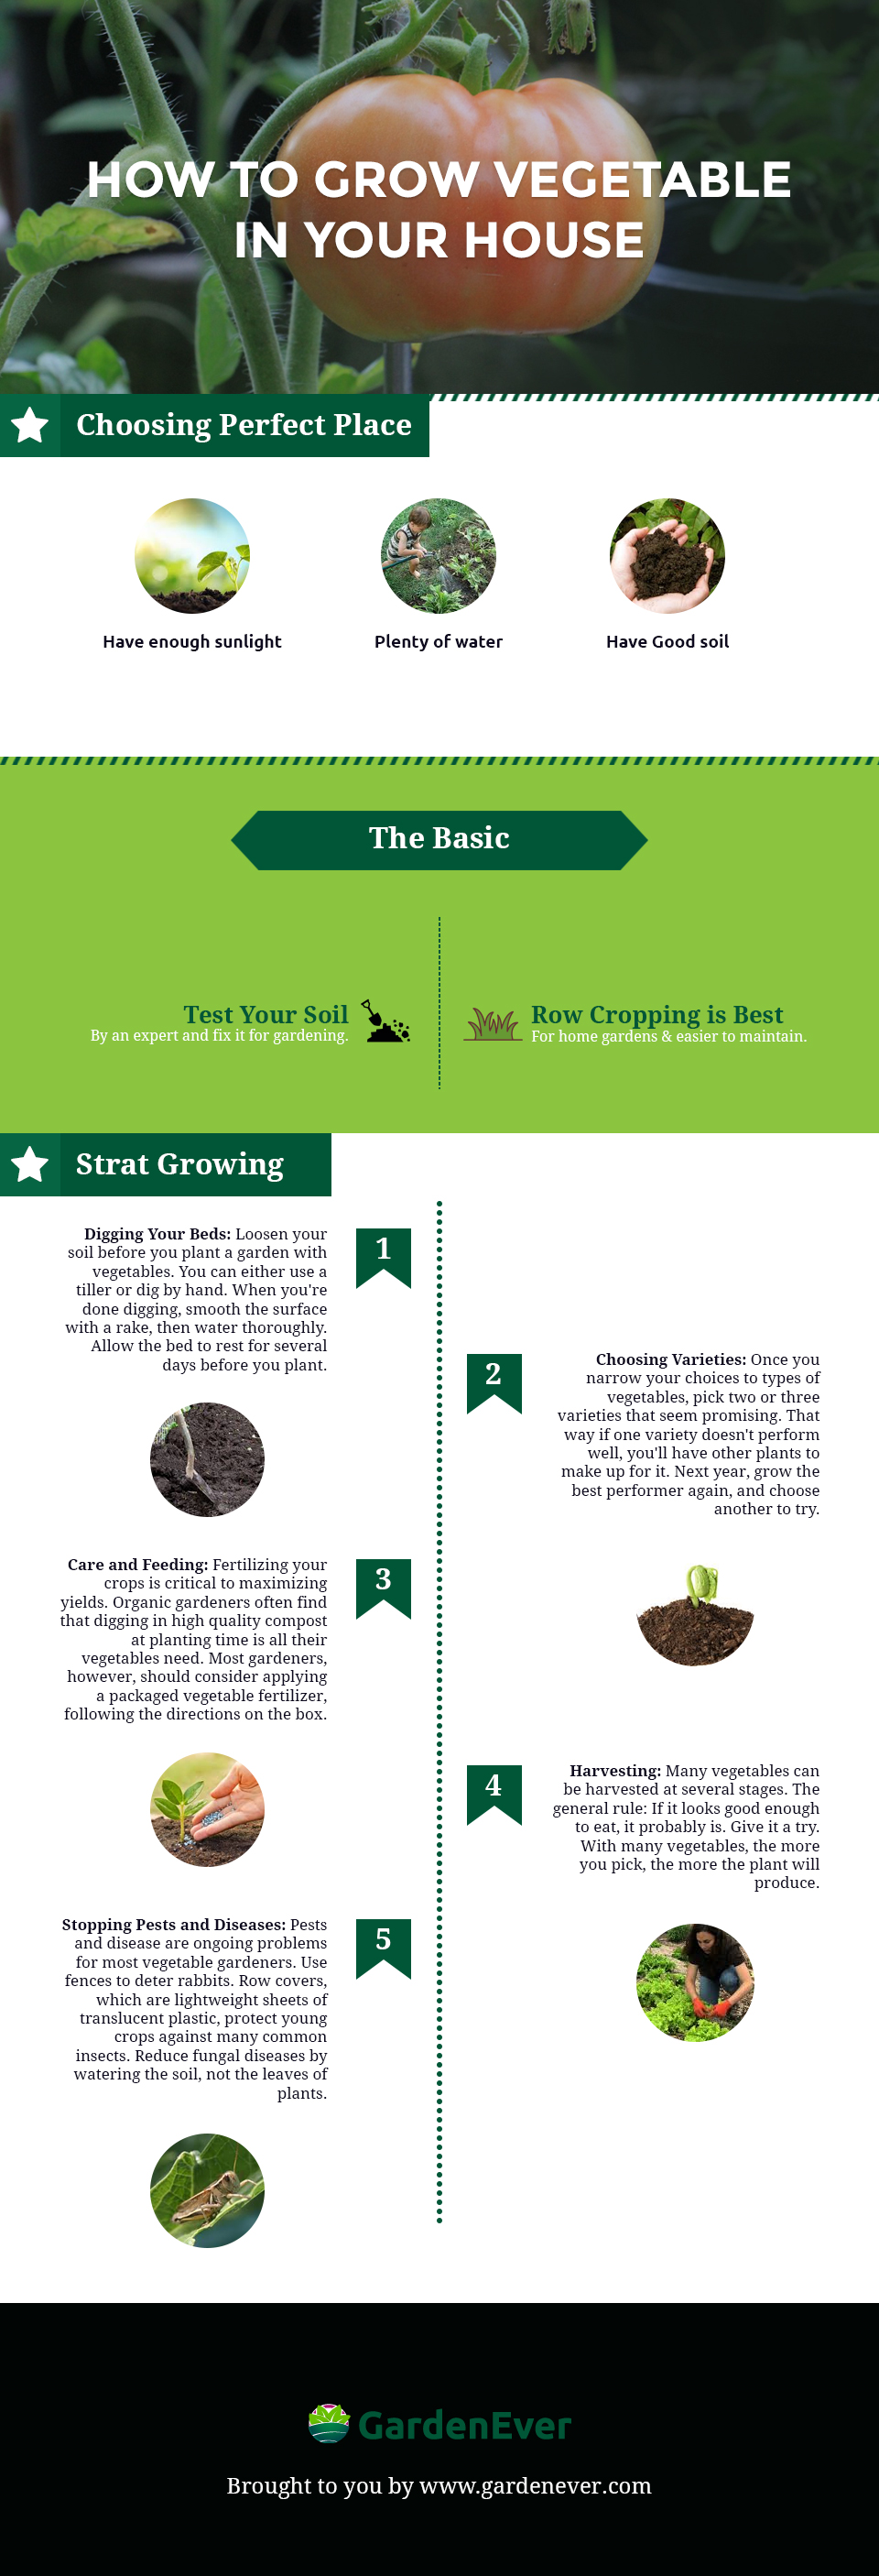 How To Grow Vegetable In Your House [Infographic]